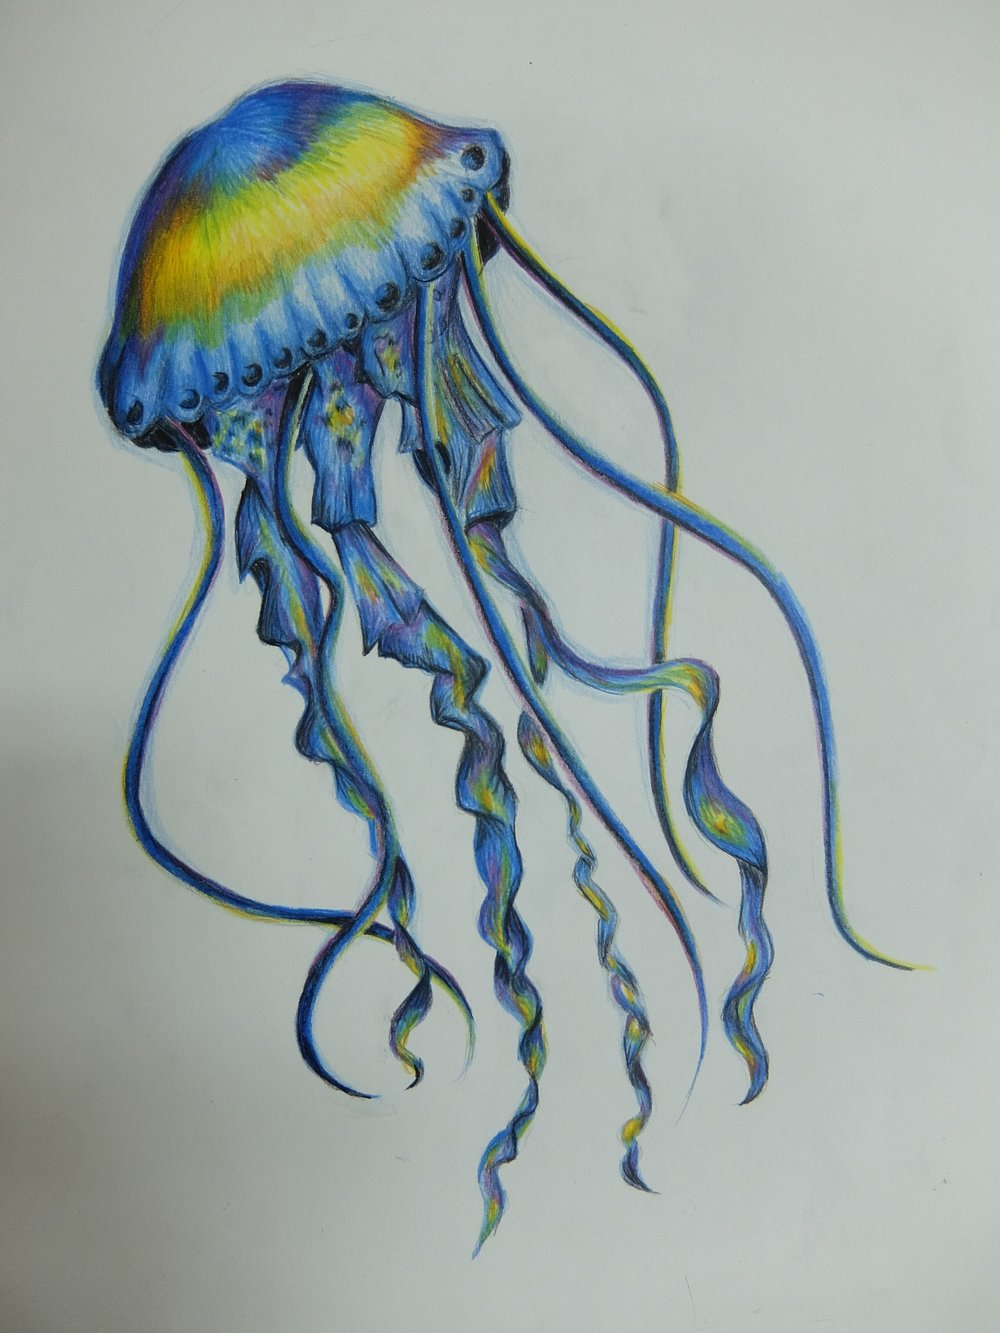 Jellyfish by Preme, 10 years old, Canadian International School, Abu Dhabi, UAE